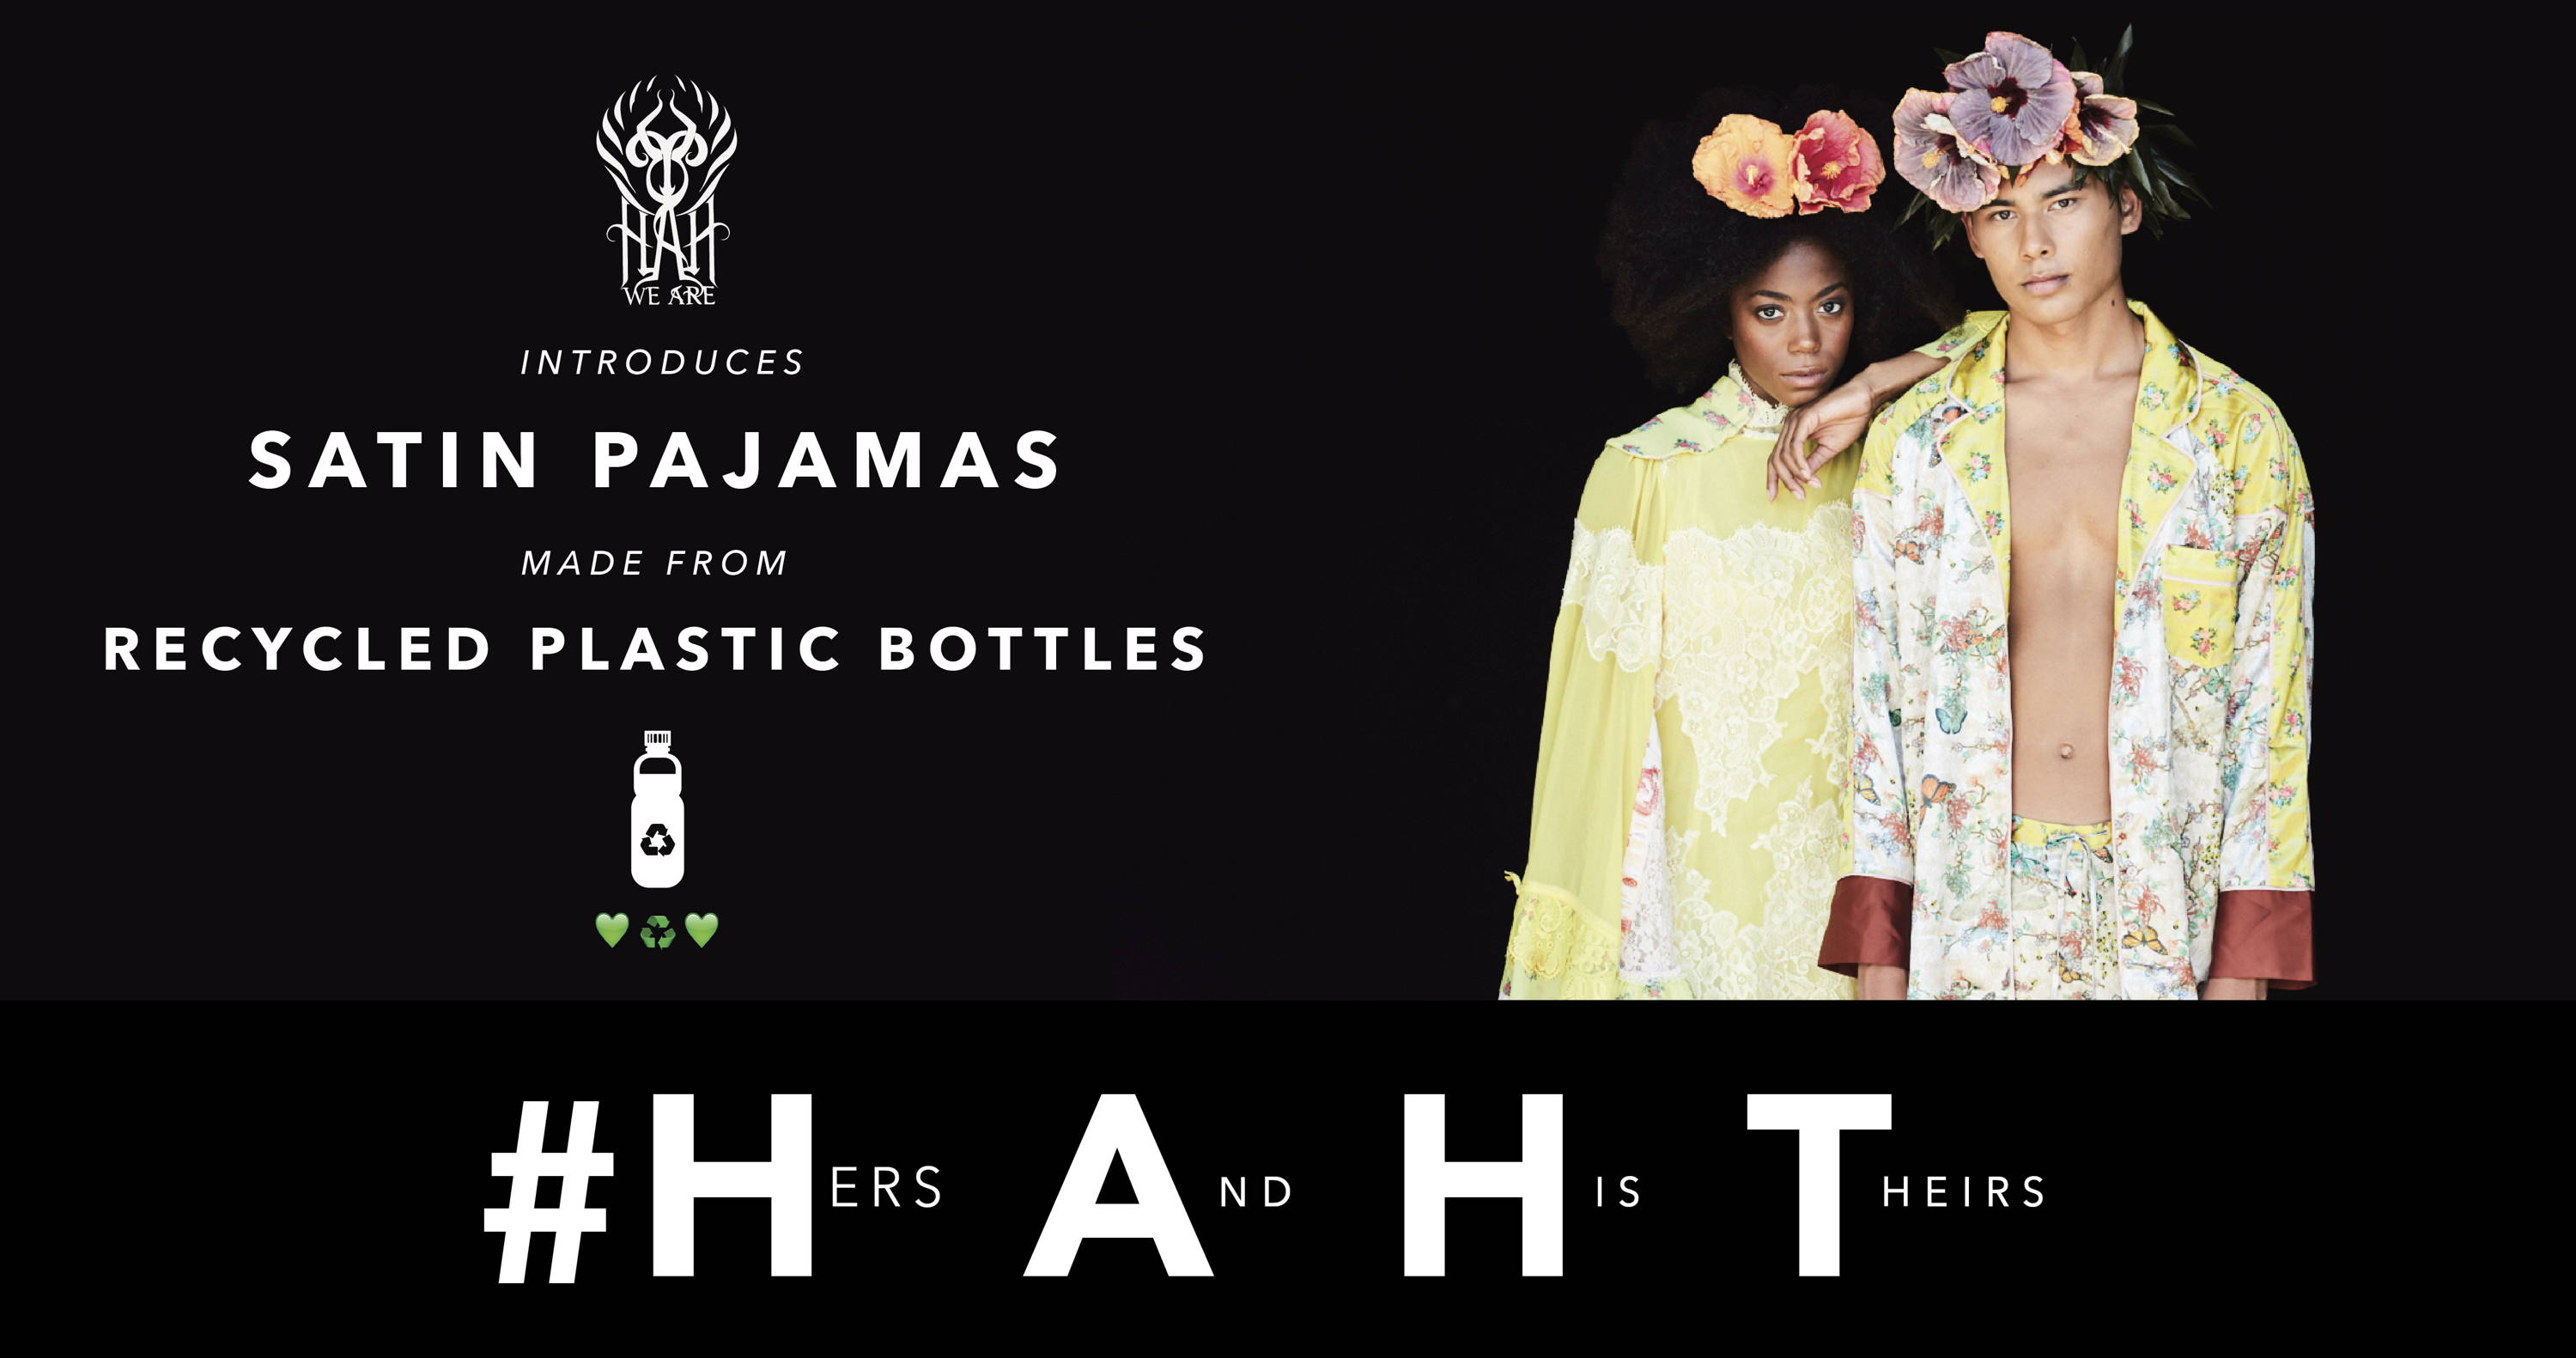 satin pajamas made of recycled plastic bottles we are haht we are hah hot as hell eco friendly pajamas unisex